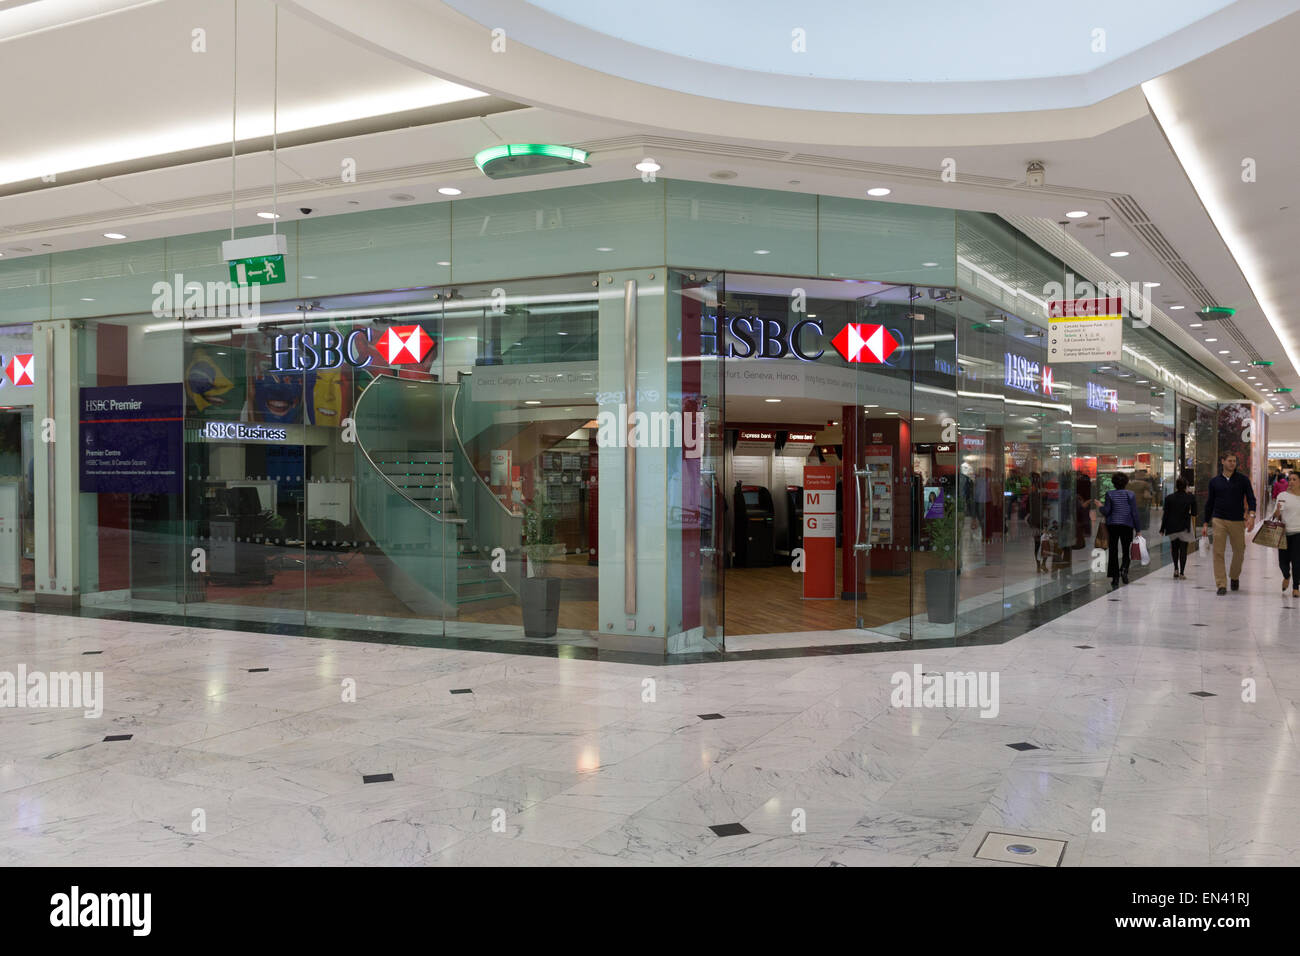 Hsbc Branch Hong Kong Stock Photos & Hsbc Branch Hong Kong Stock